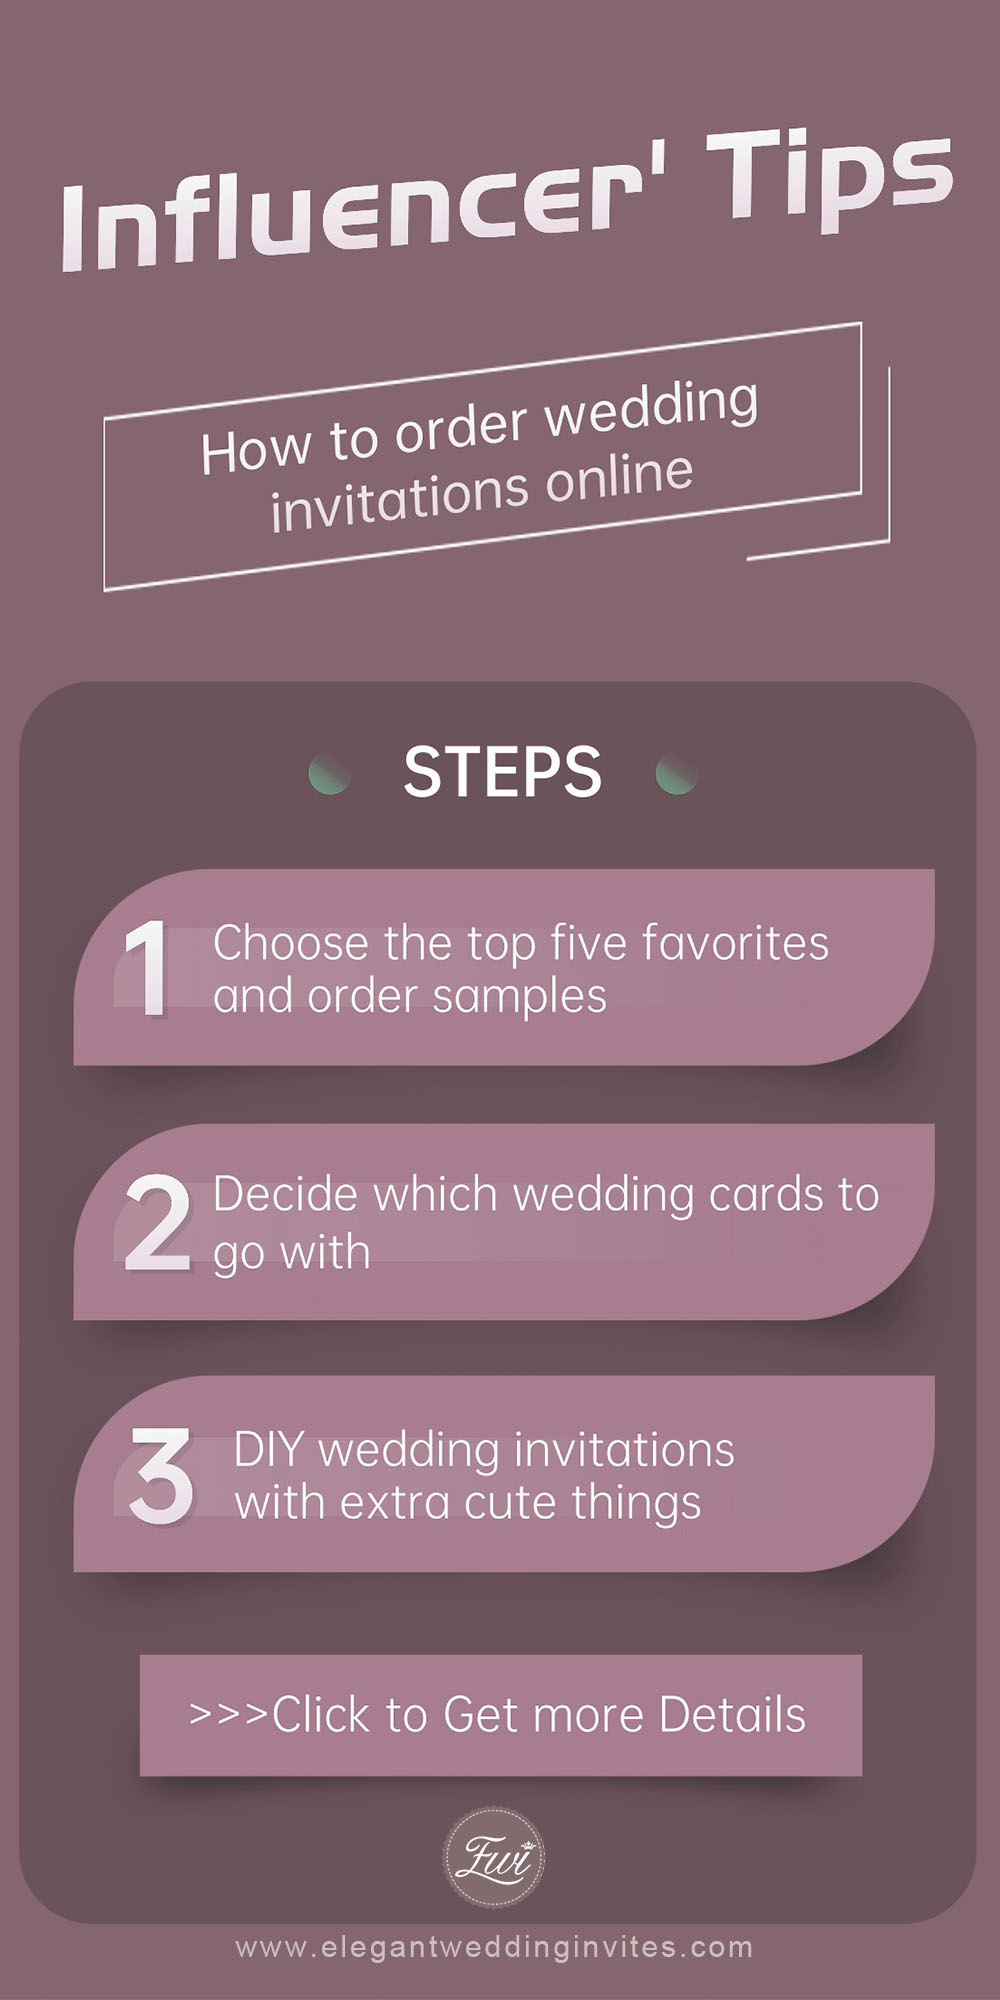 tips:how to order wedding invitations online